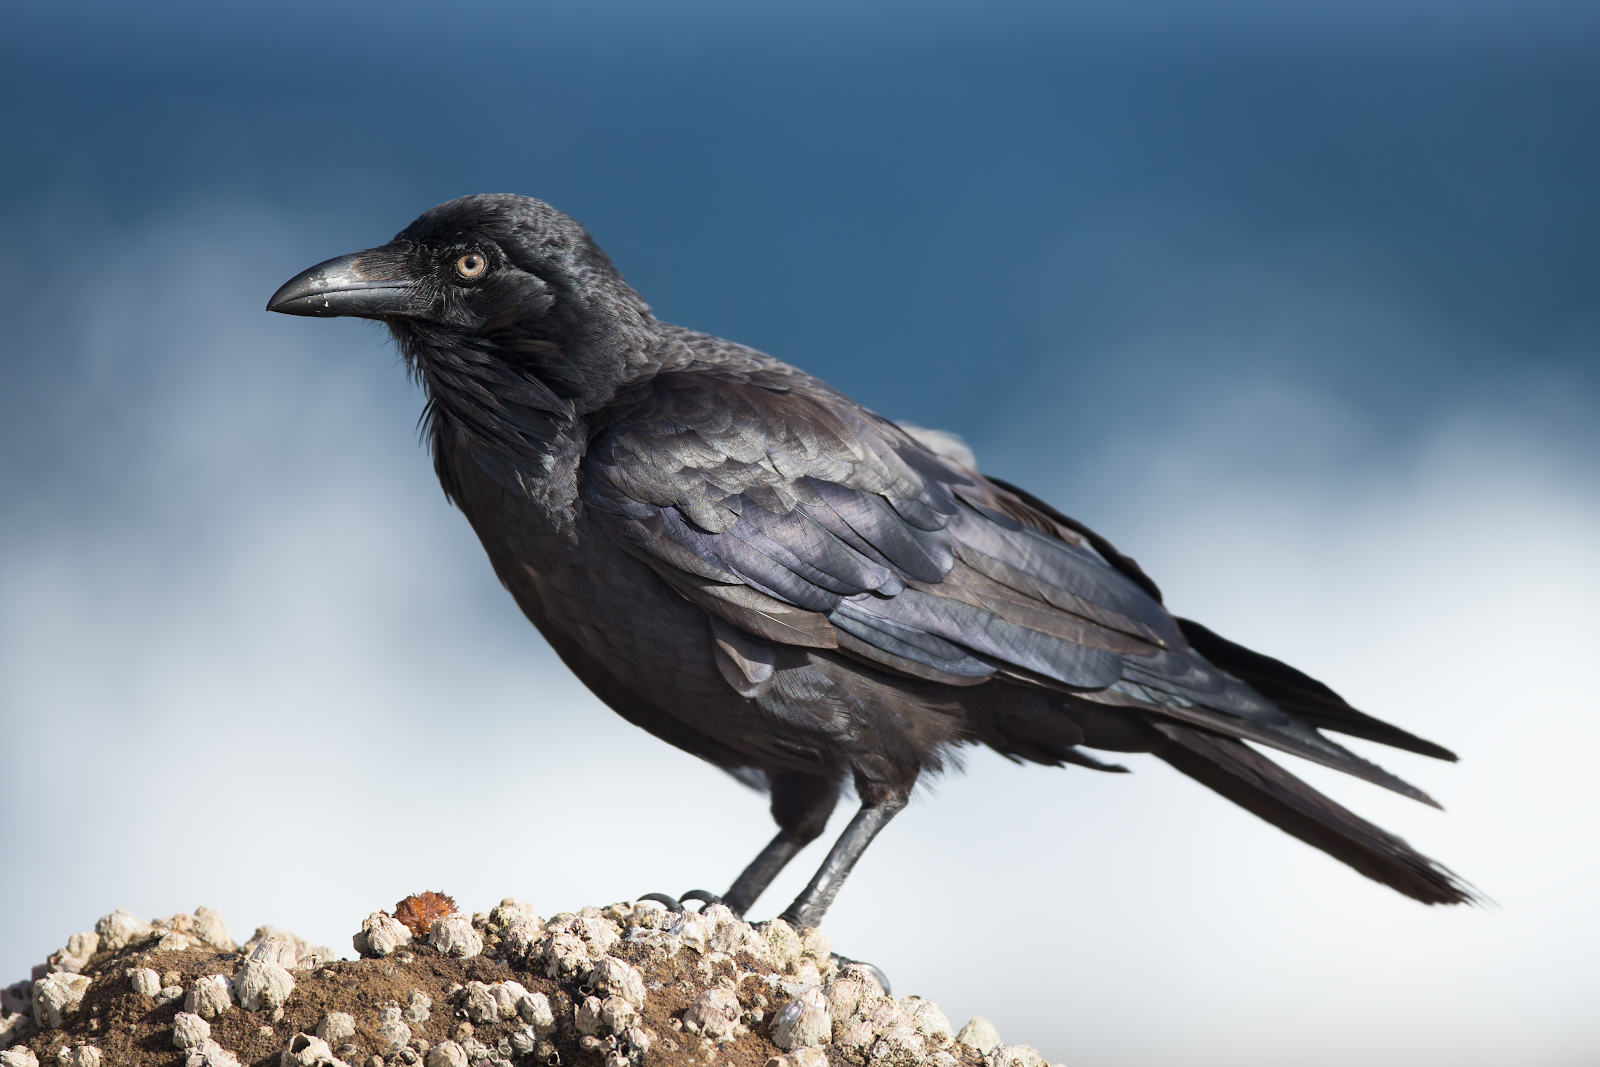 Crow standing on a stone / rock